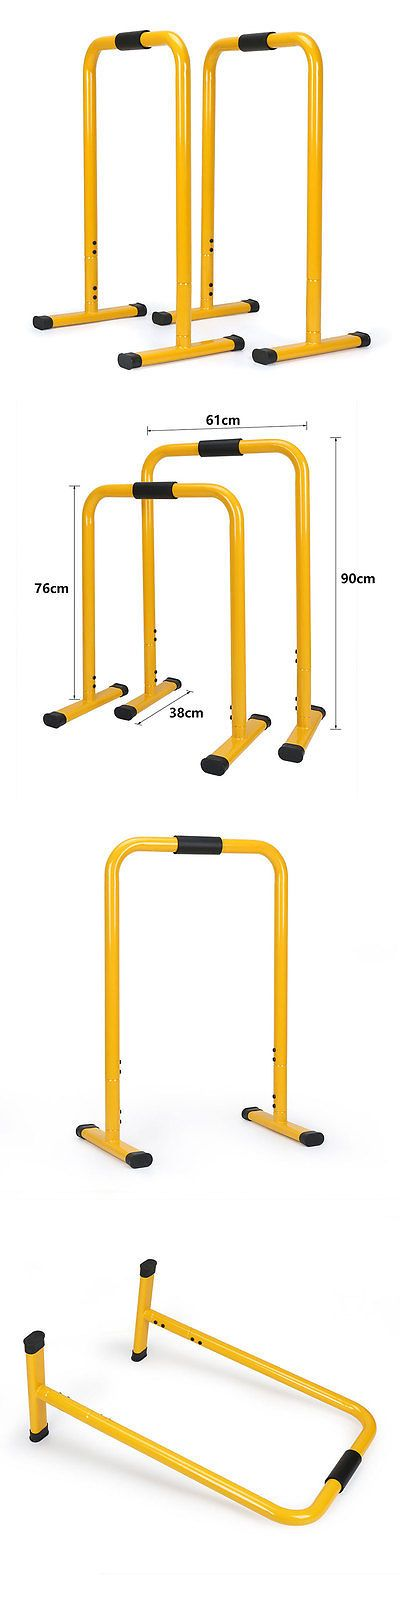 Other Strength Training 28067: Body Press Dip Stand Fitness Equalizer Parallel Bars Dip Station Bars Yellow -> BUY IT NOW ONLY: $79.99 on eBay!